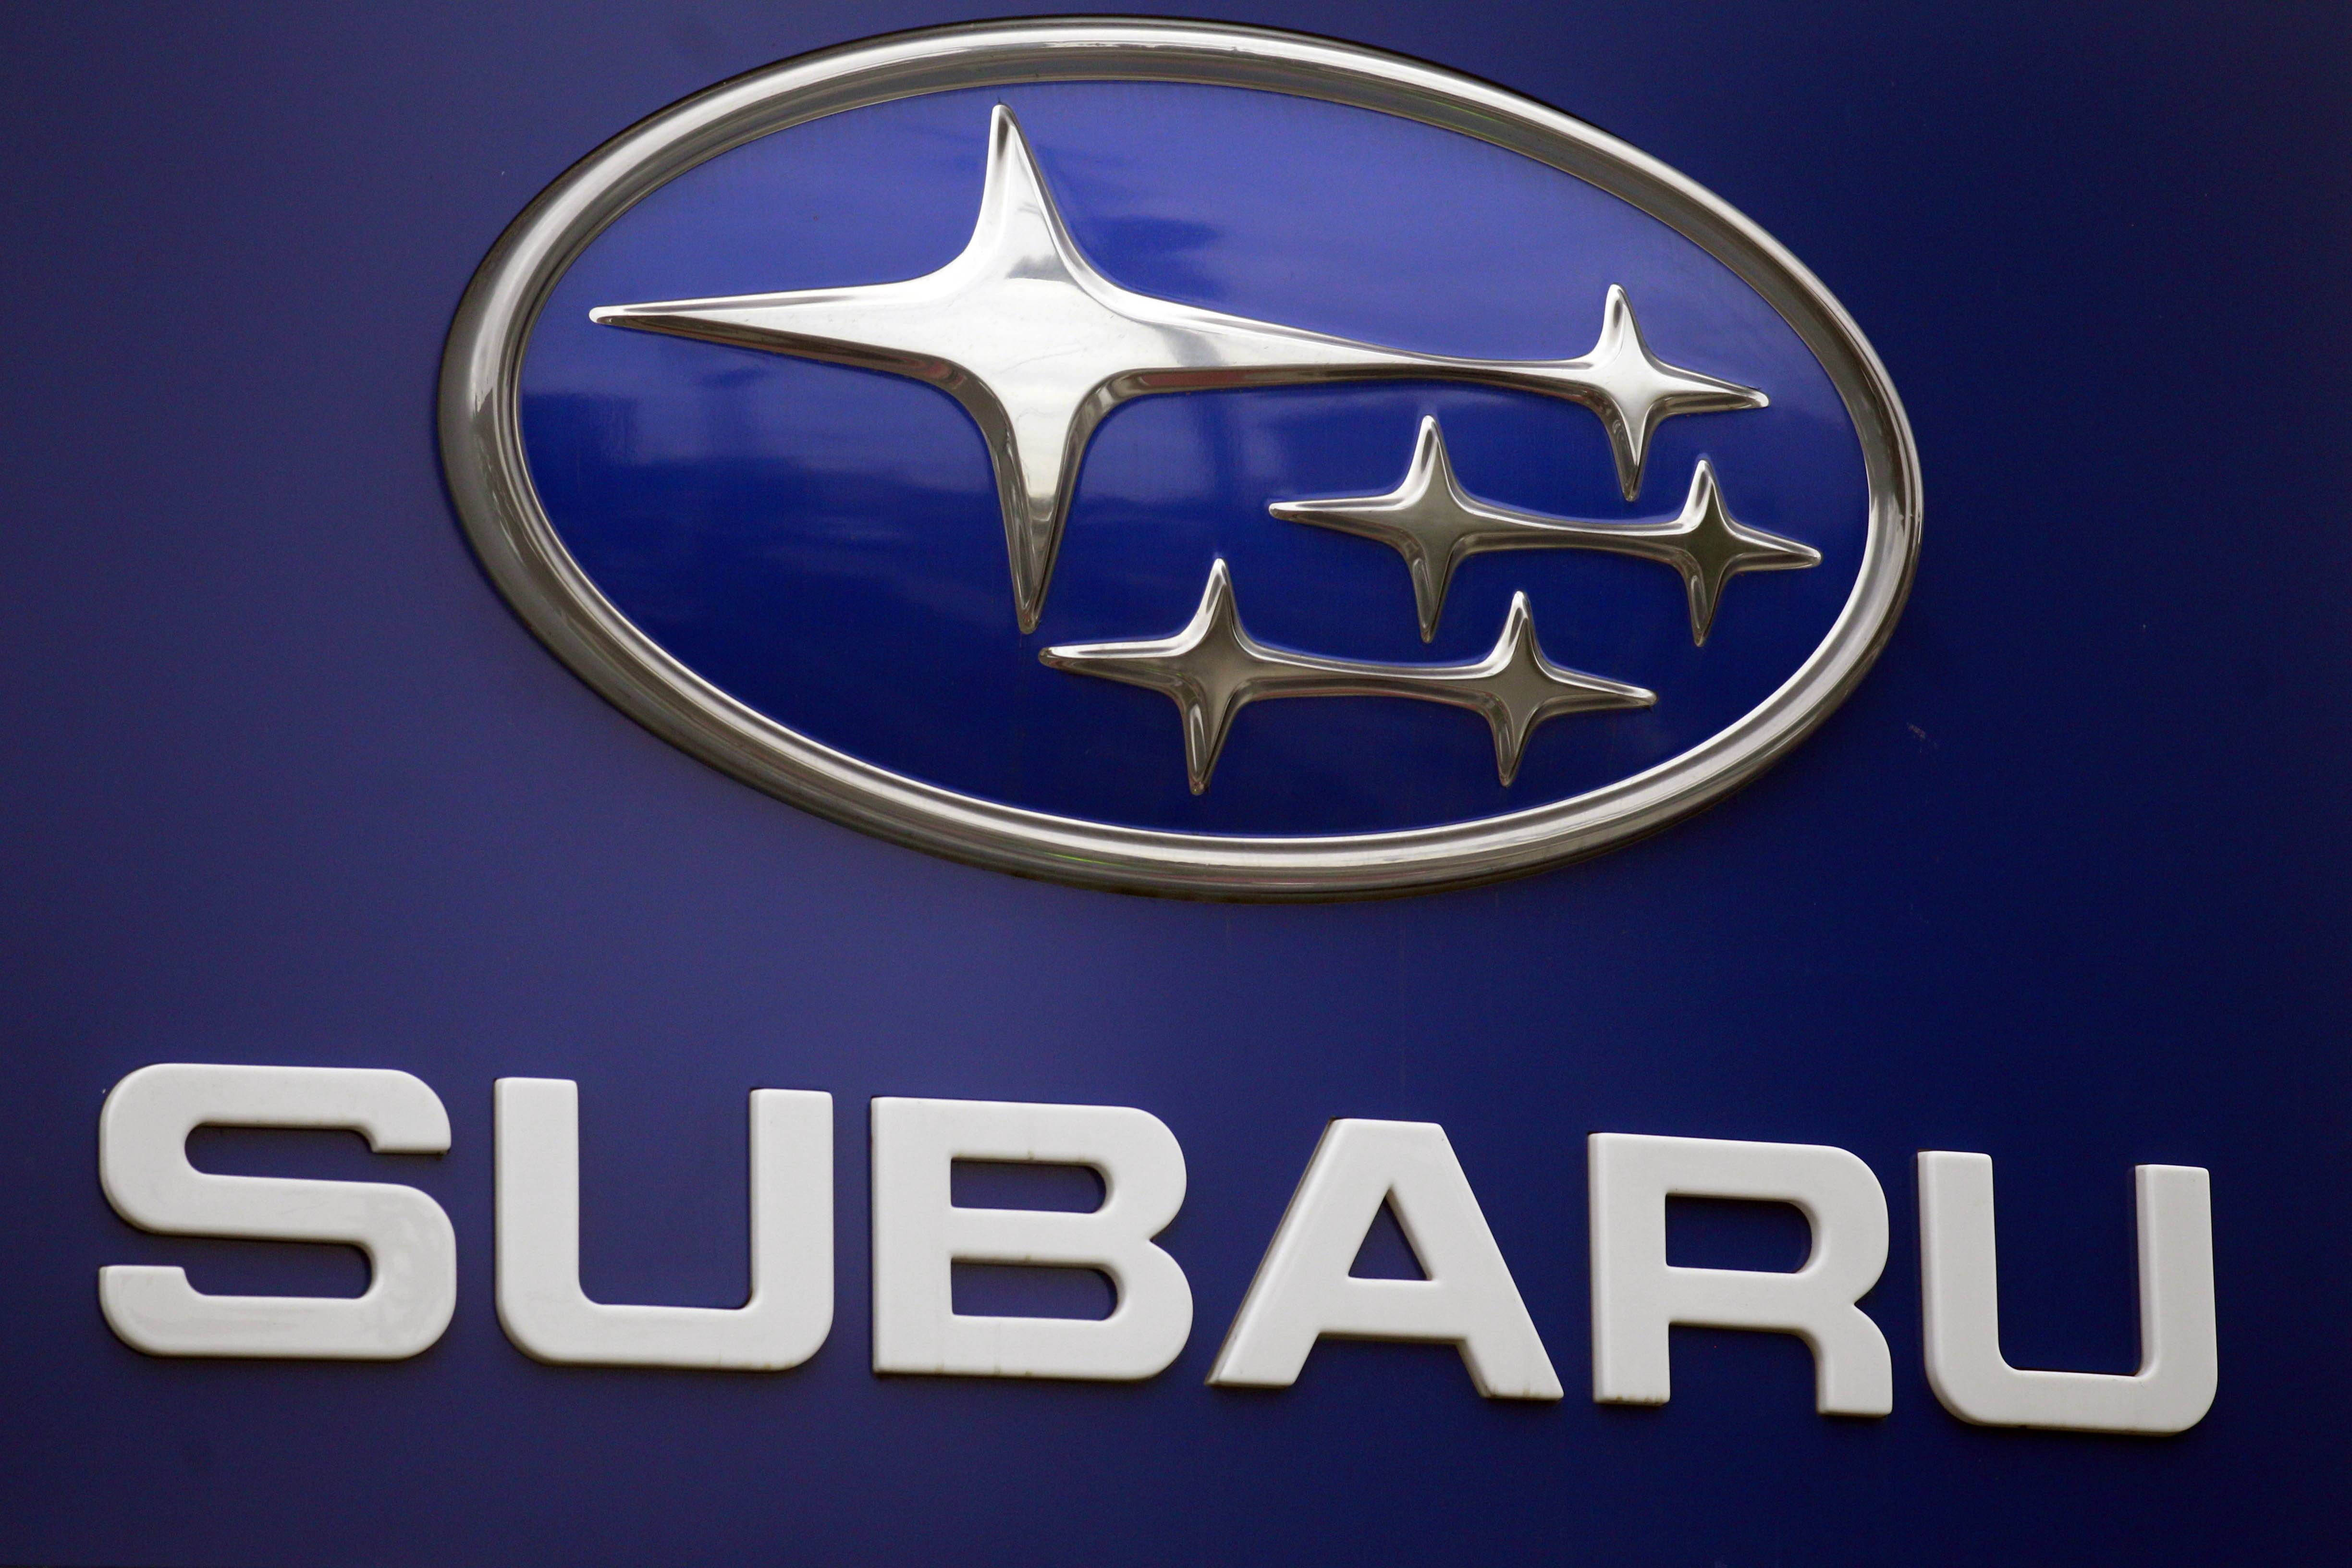 Subaru is recalling more than 660,000 cars and SUVs because the brake lines can rust and leak fluid, and that can cause longer stopping distances. For about half the vehicles, it's the second recall for the same problem.